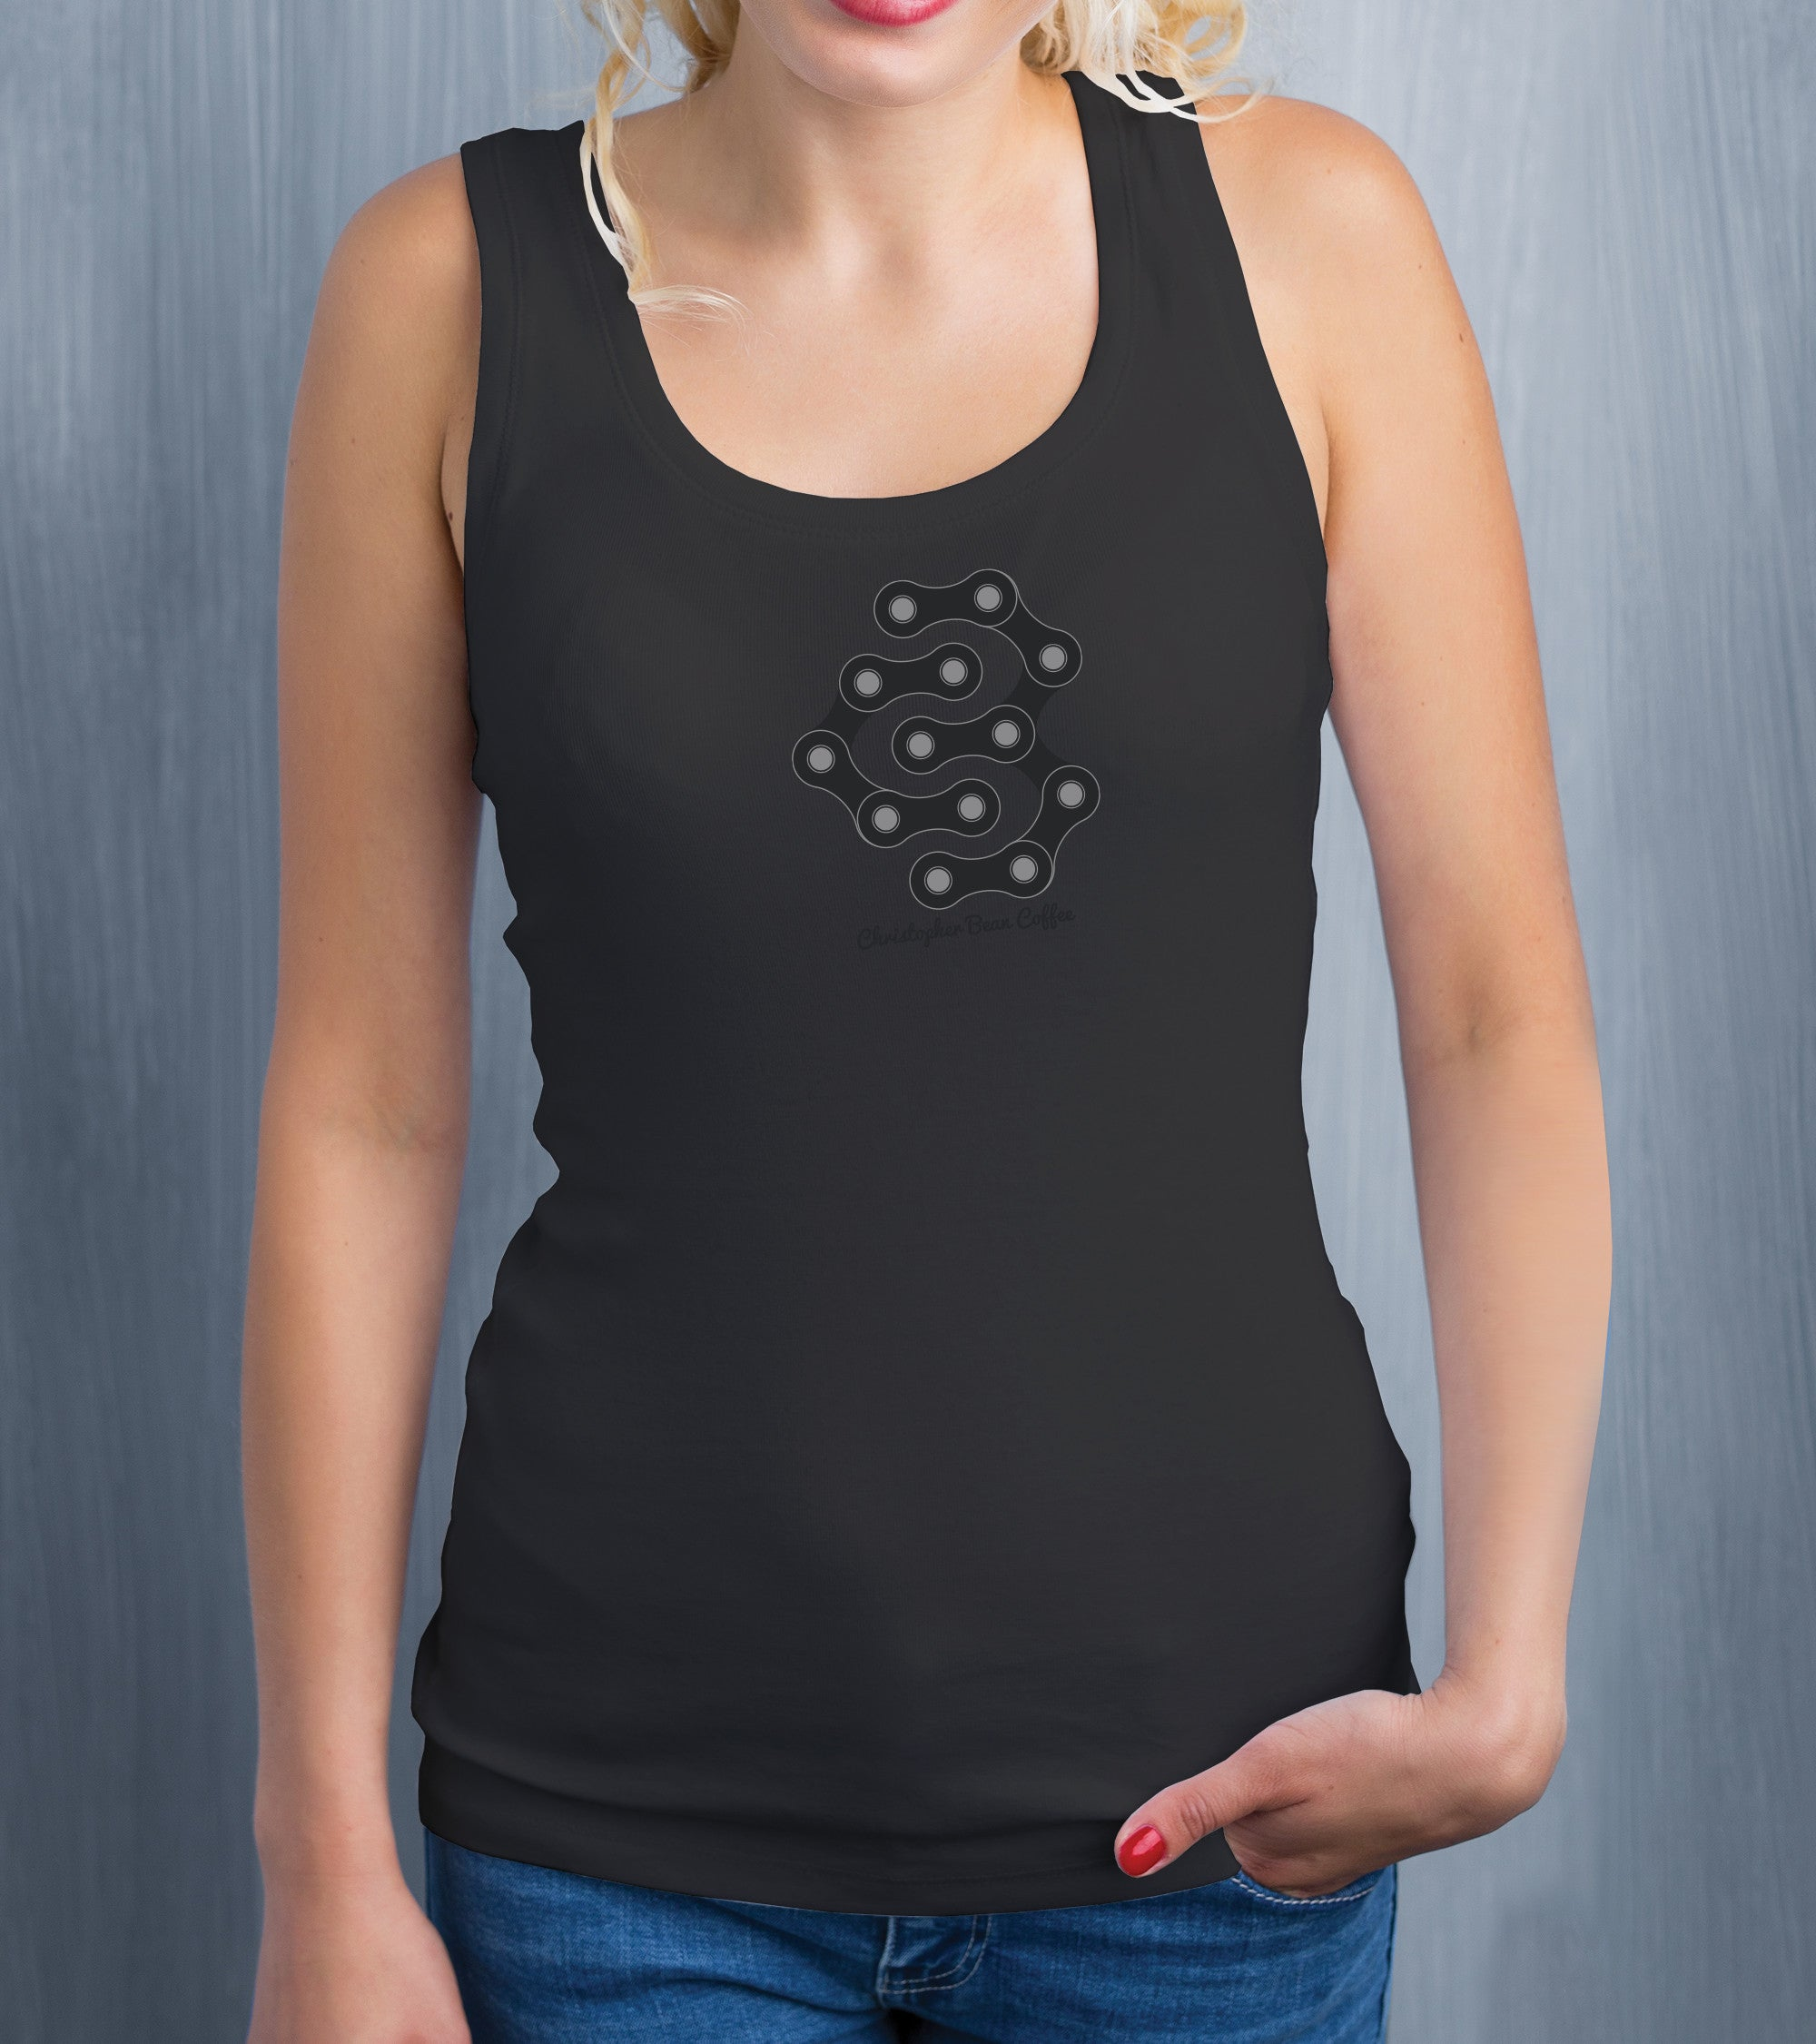 Ladies Off The Chain CB Design Tank Top